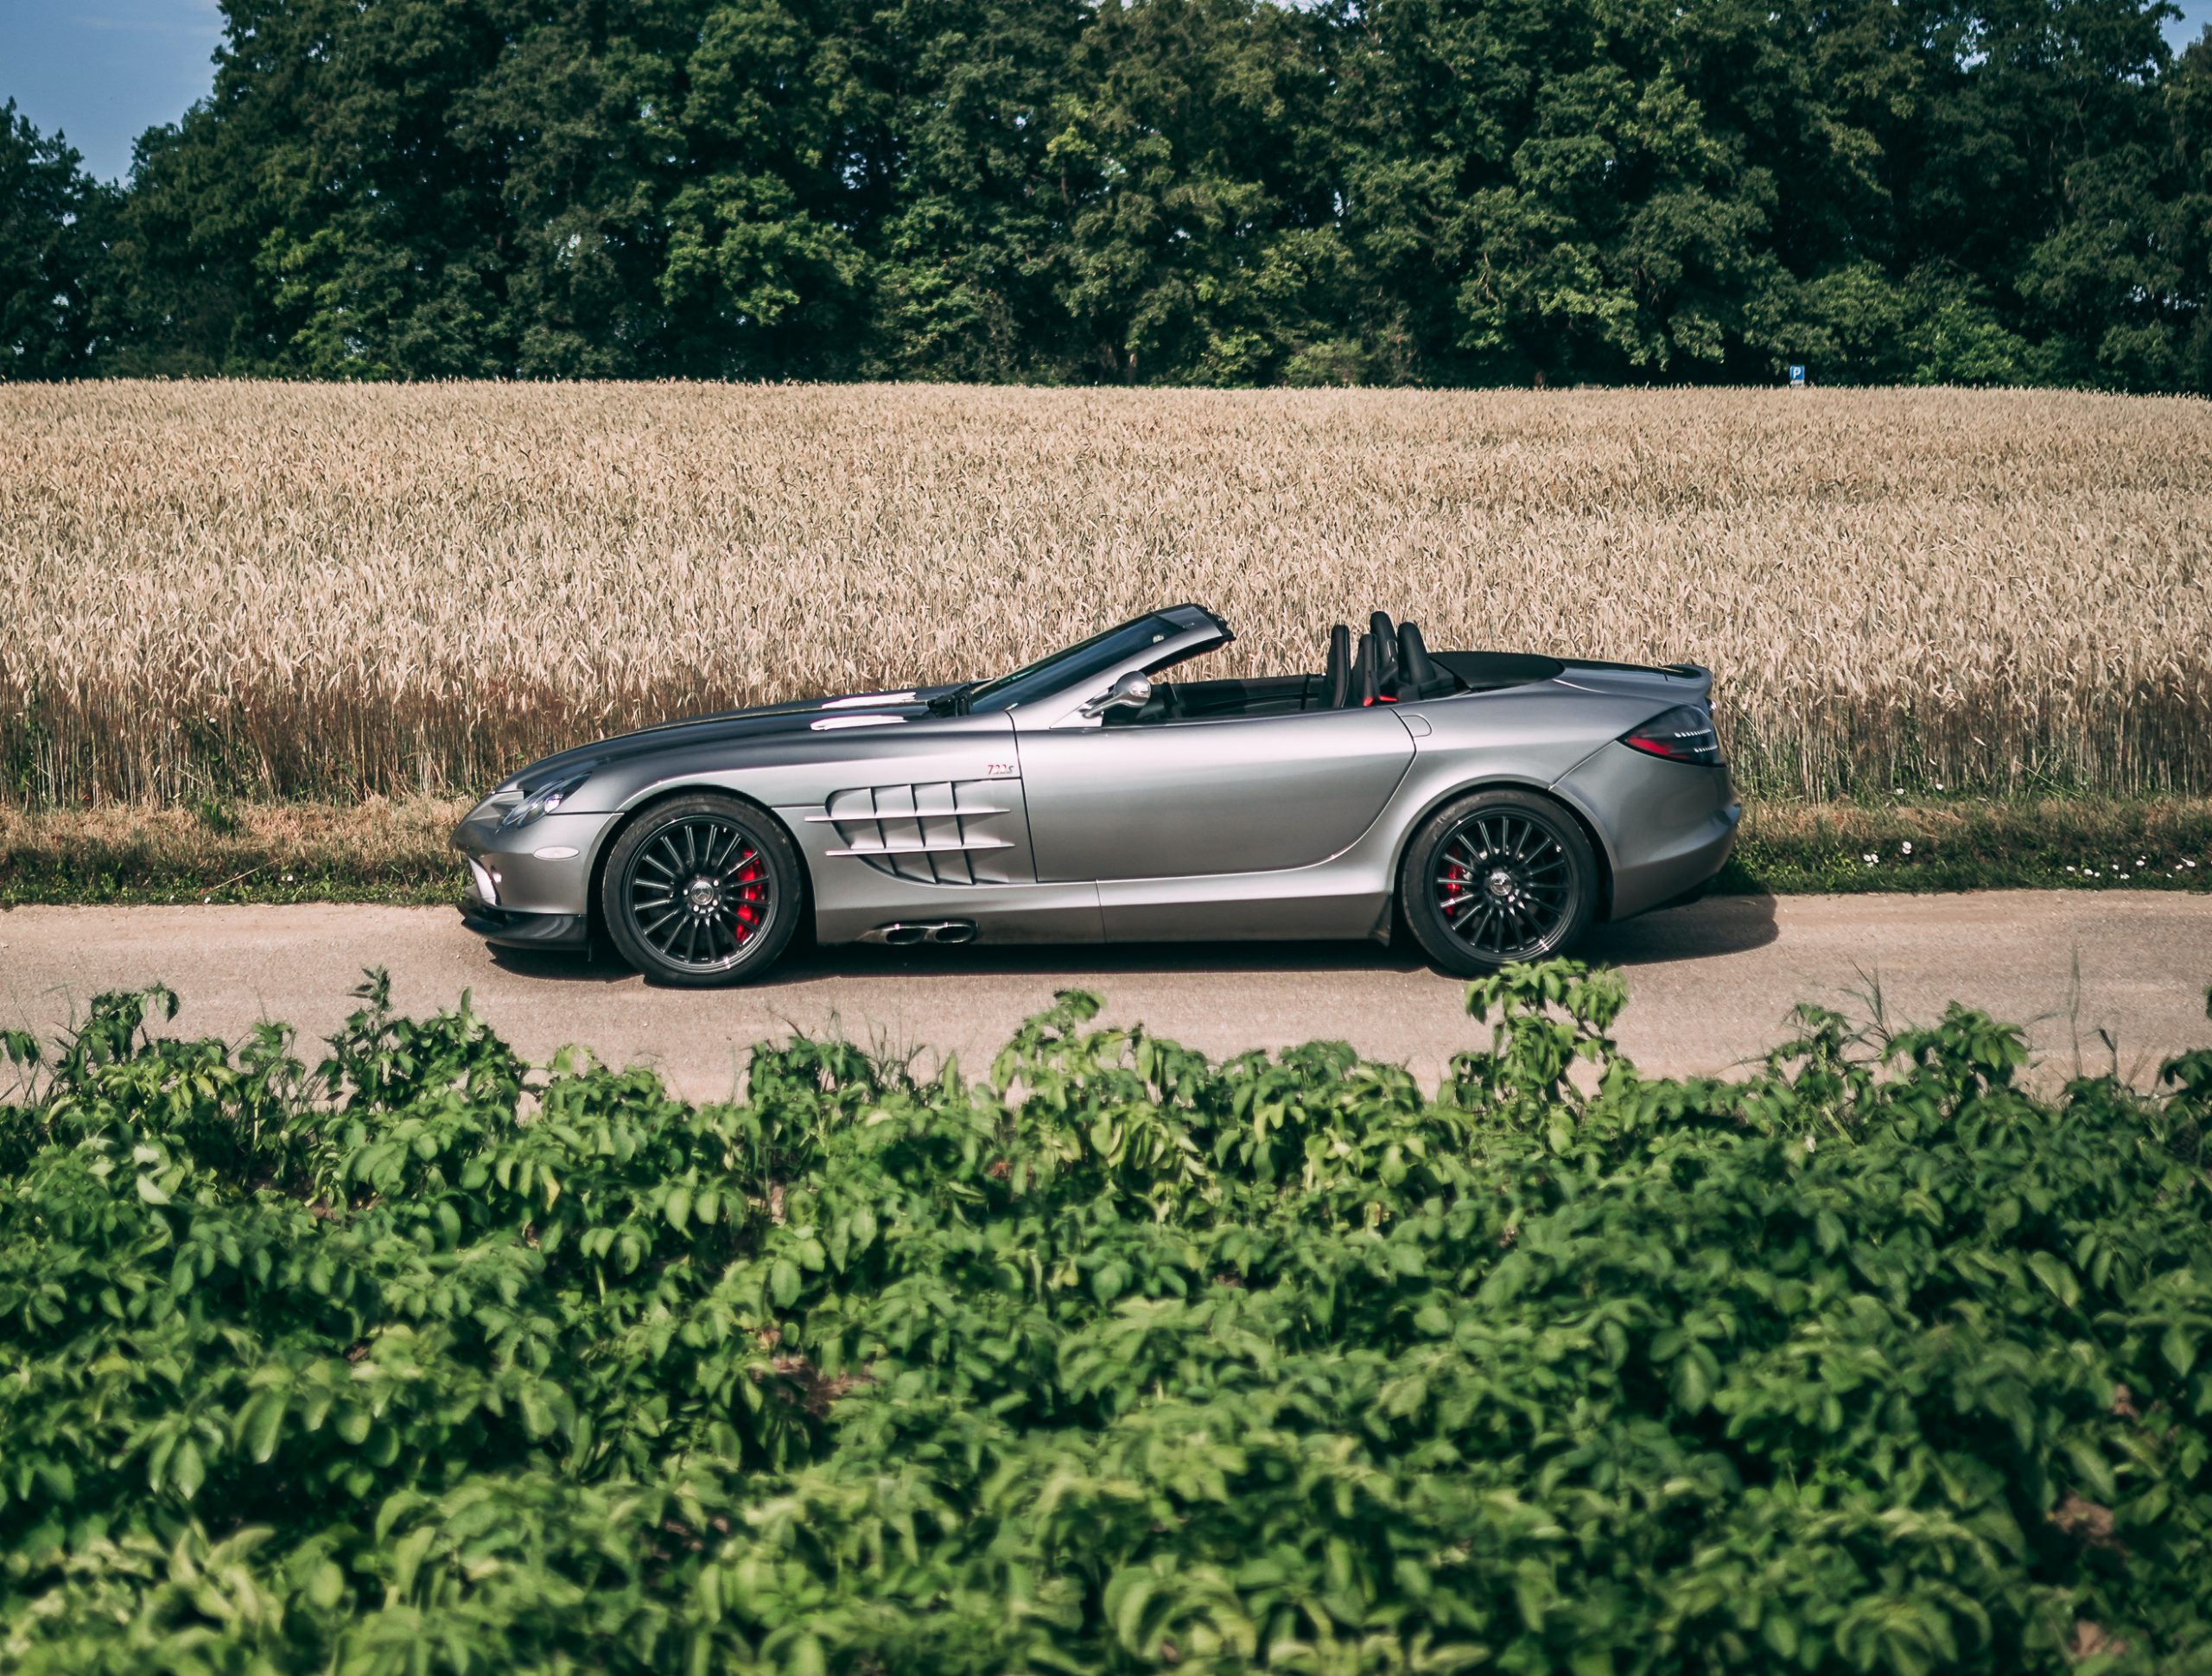 200723 2009 Mercedes-Benz SLR McLaren 722 S Roadster (Credit – Stephan Bauer ©2020 Courtesy of RM Sotheby's)